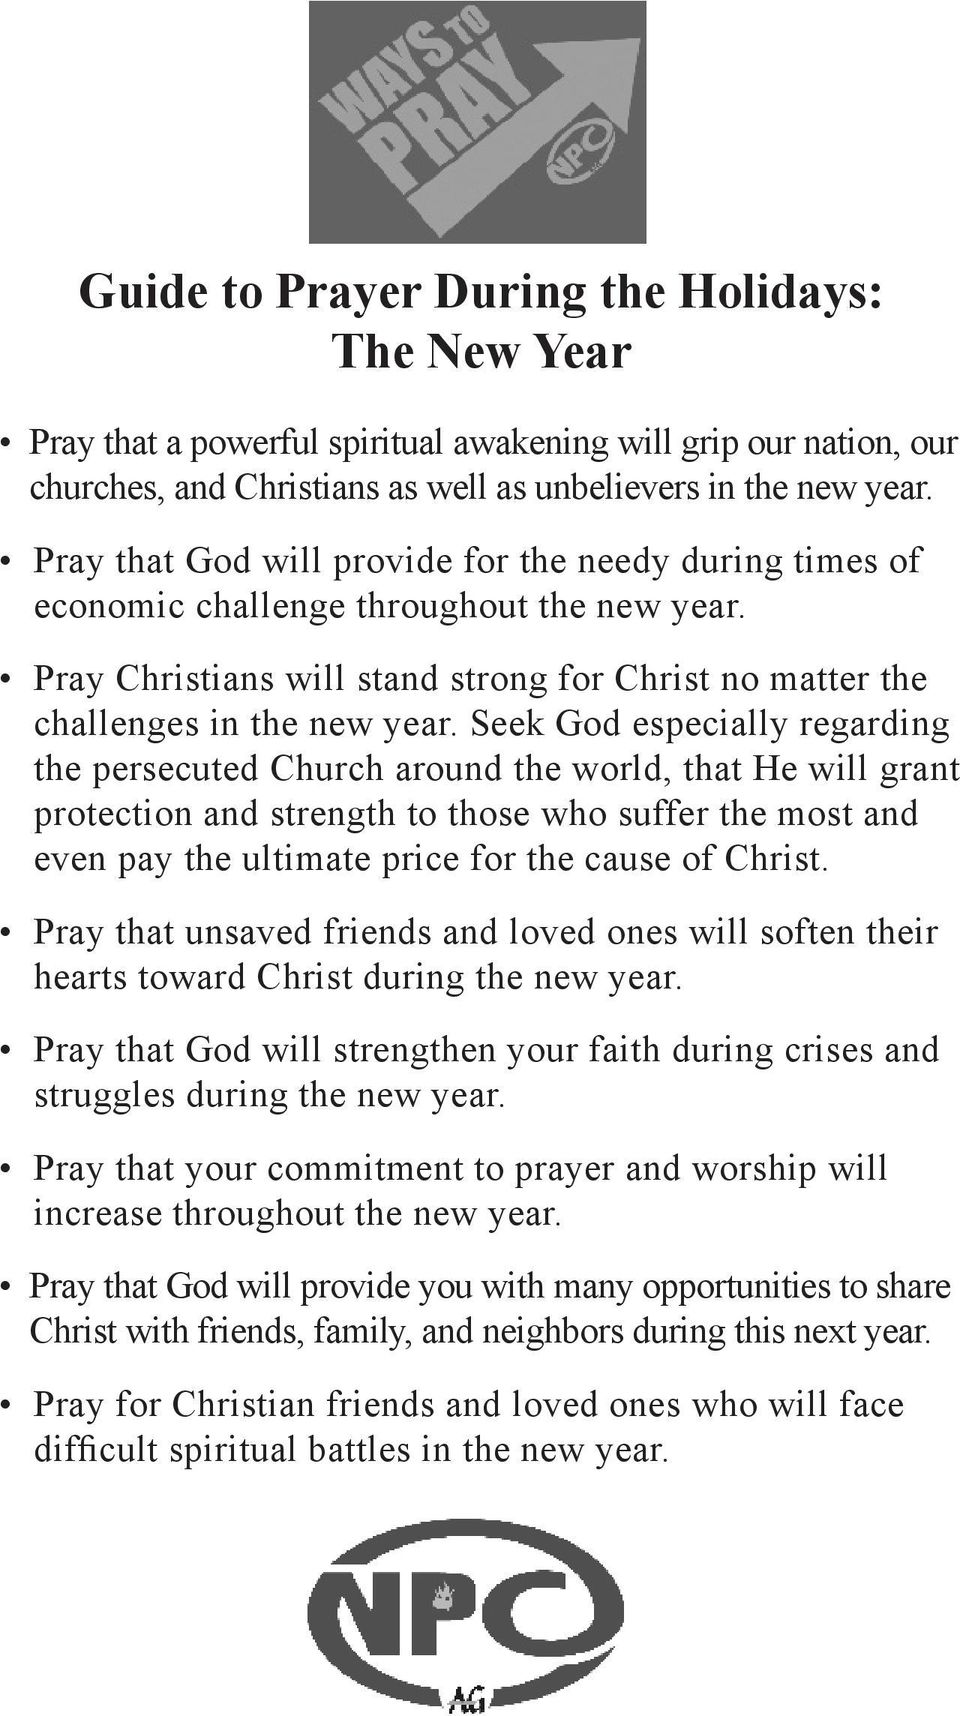 Prayer Guides for the Holidays: Thanksgiving, Christmas, and the New ...